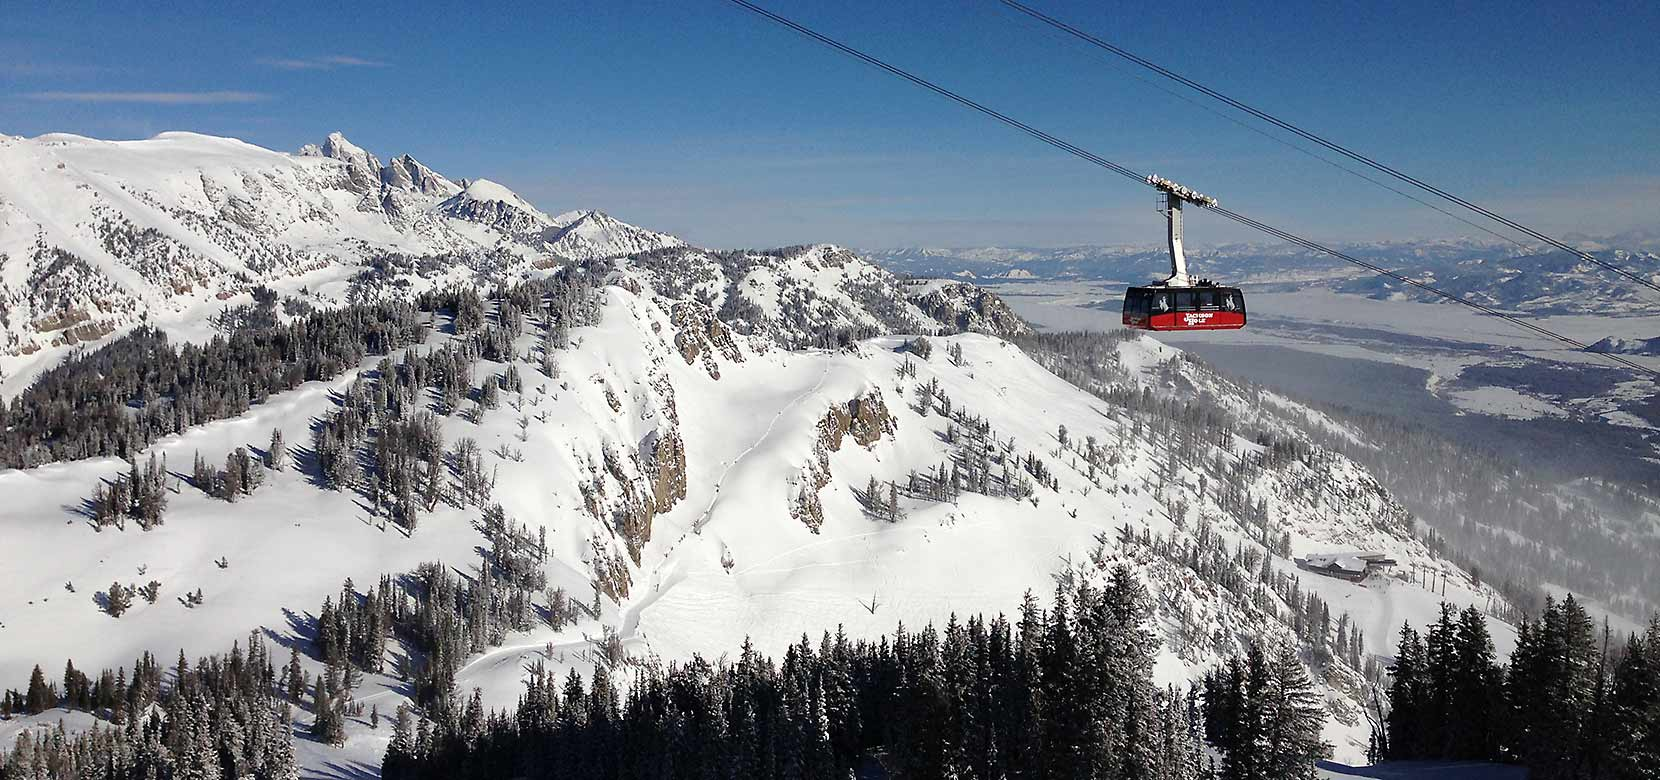 Jackson Hole Skiing - Jackson Hole Mountain Resort